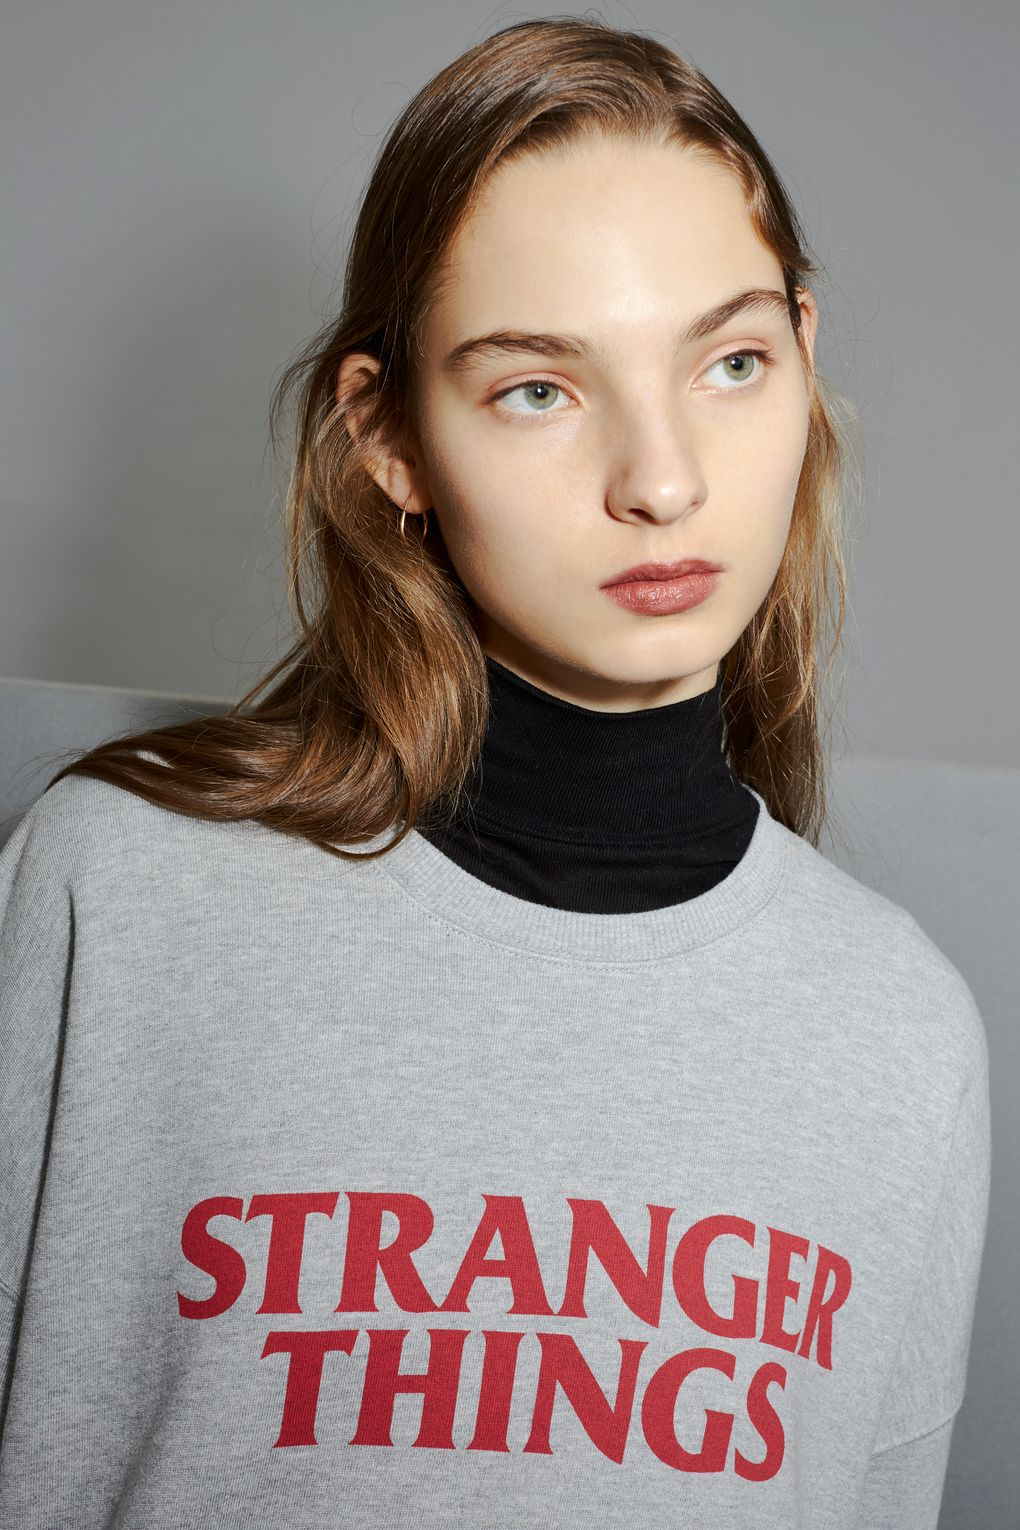 stranger things, netfilx, topshop, capsule, collection, 80s, styling,